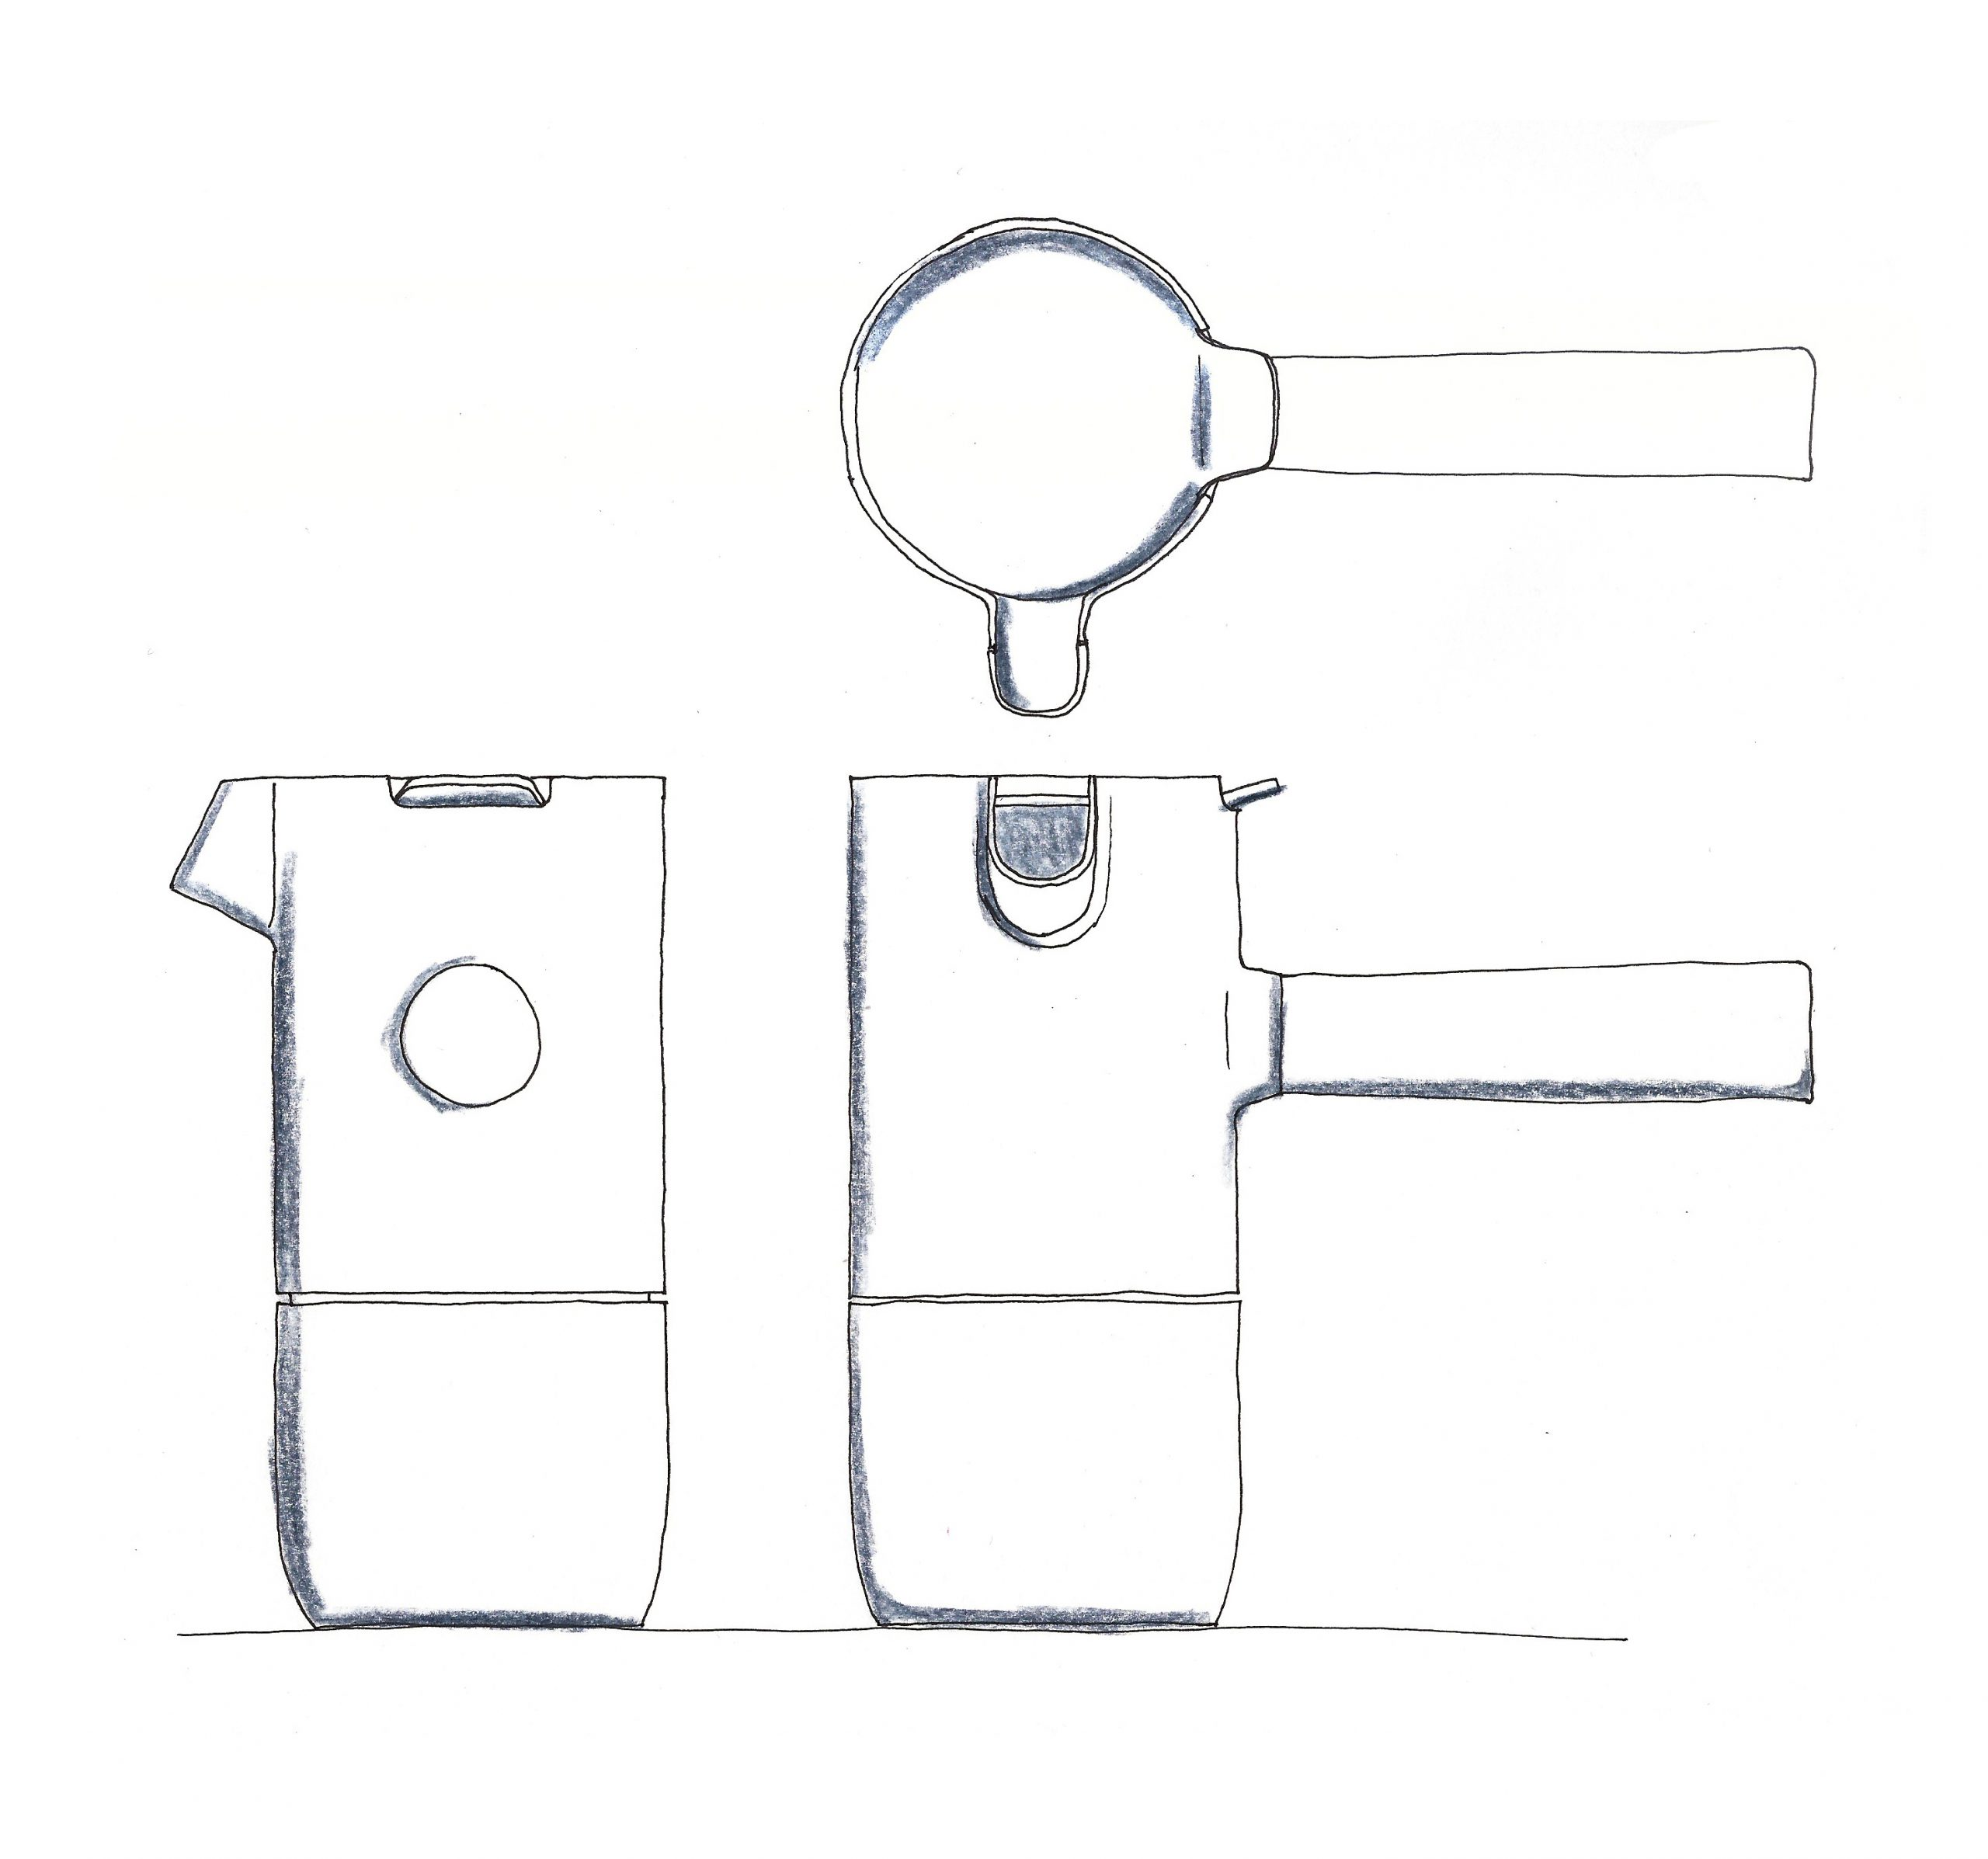 Concept sketch of Collar coffee set by Debiasi Sandri for Stelton